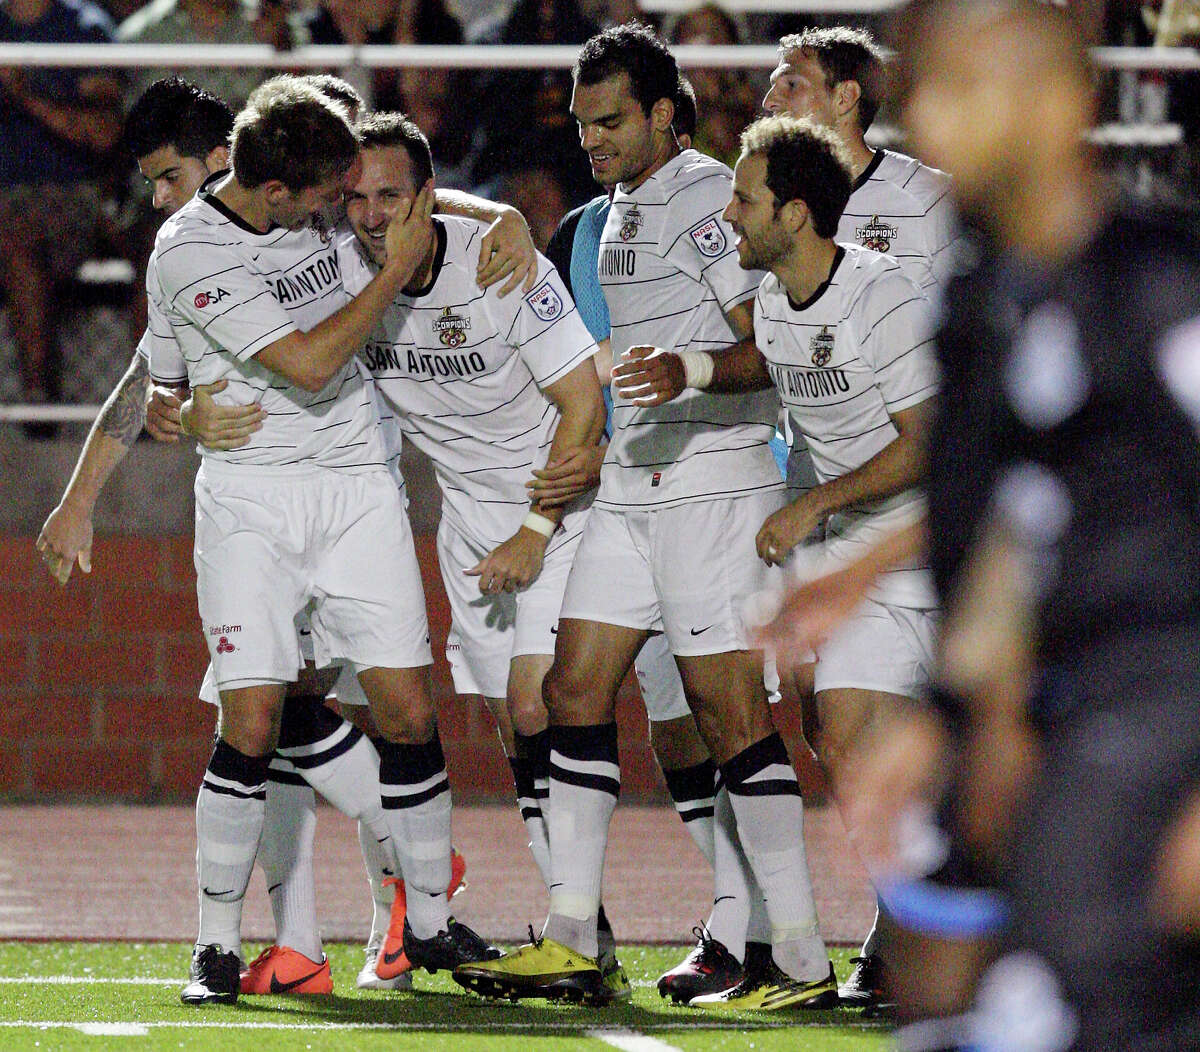 Scorpions' Fabian Kling (left) celebrates with teammate Ryan Cochrane after Cochrane scored a goal against FC Edmonton during second half action Saturday May 19, 2012 at Heroes Stadium. The Scorpions won 2-0.